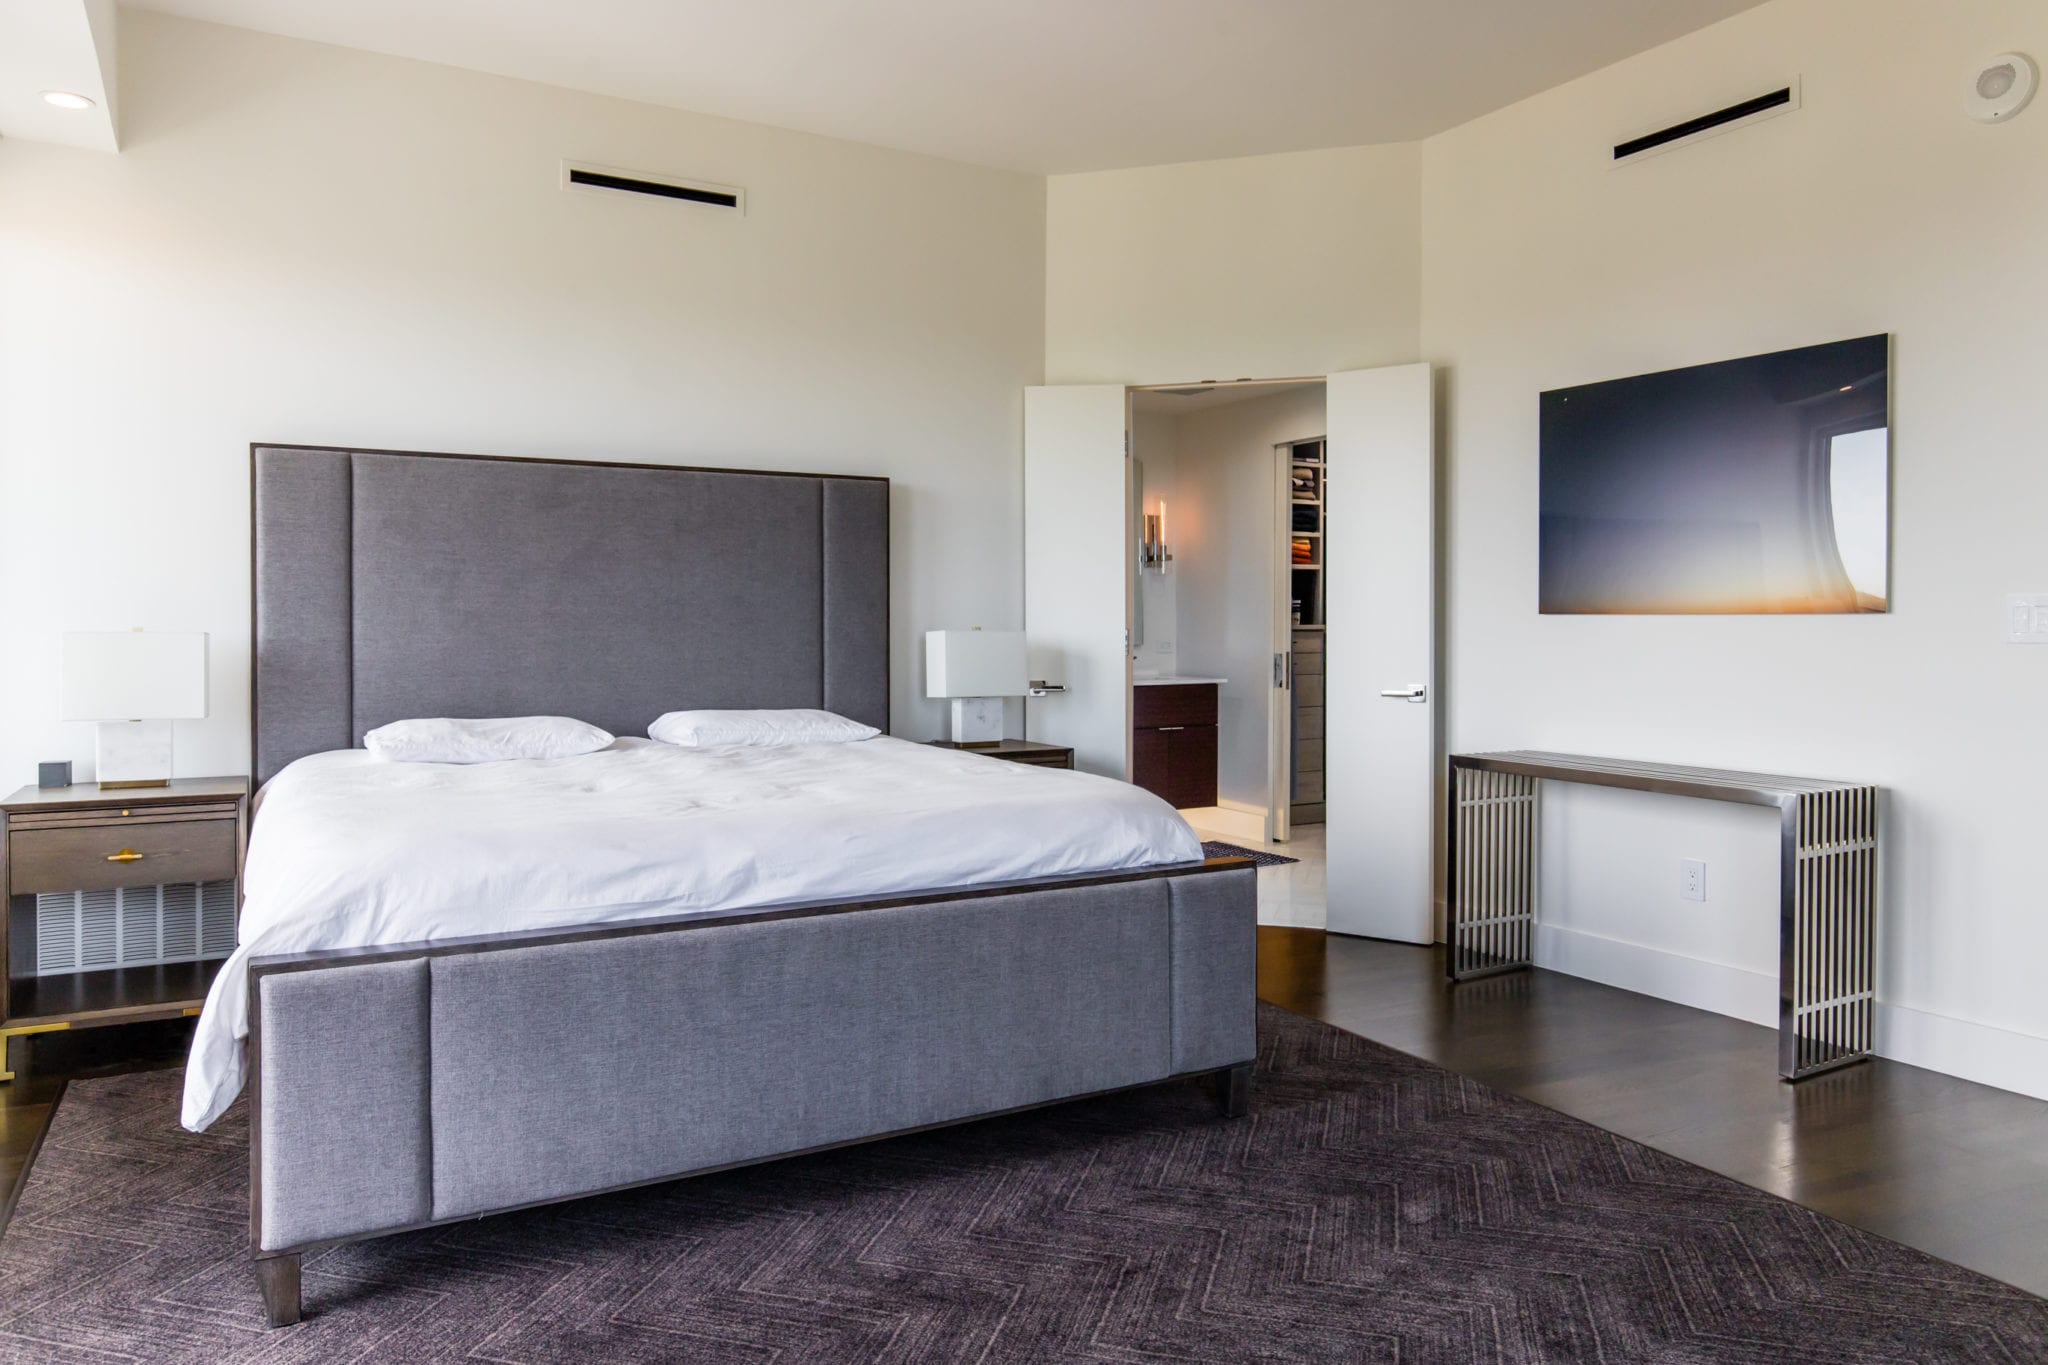 2-story-high-rise-condo-remodel-The-Travis-Katy-Trail-Master-Bedroom_033